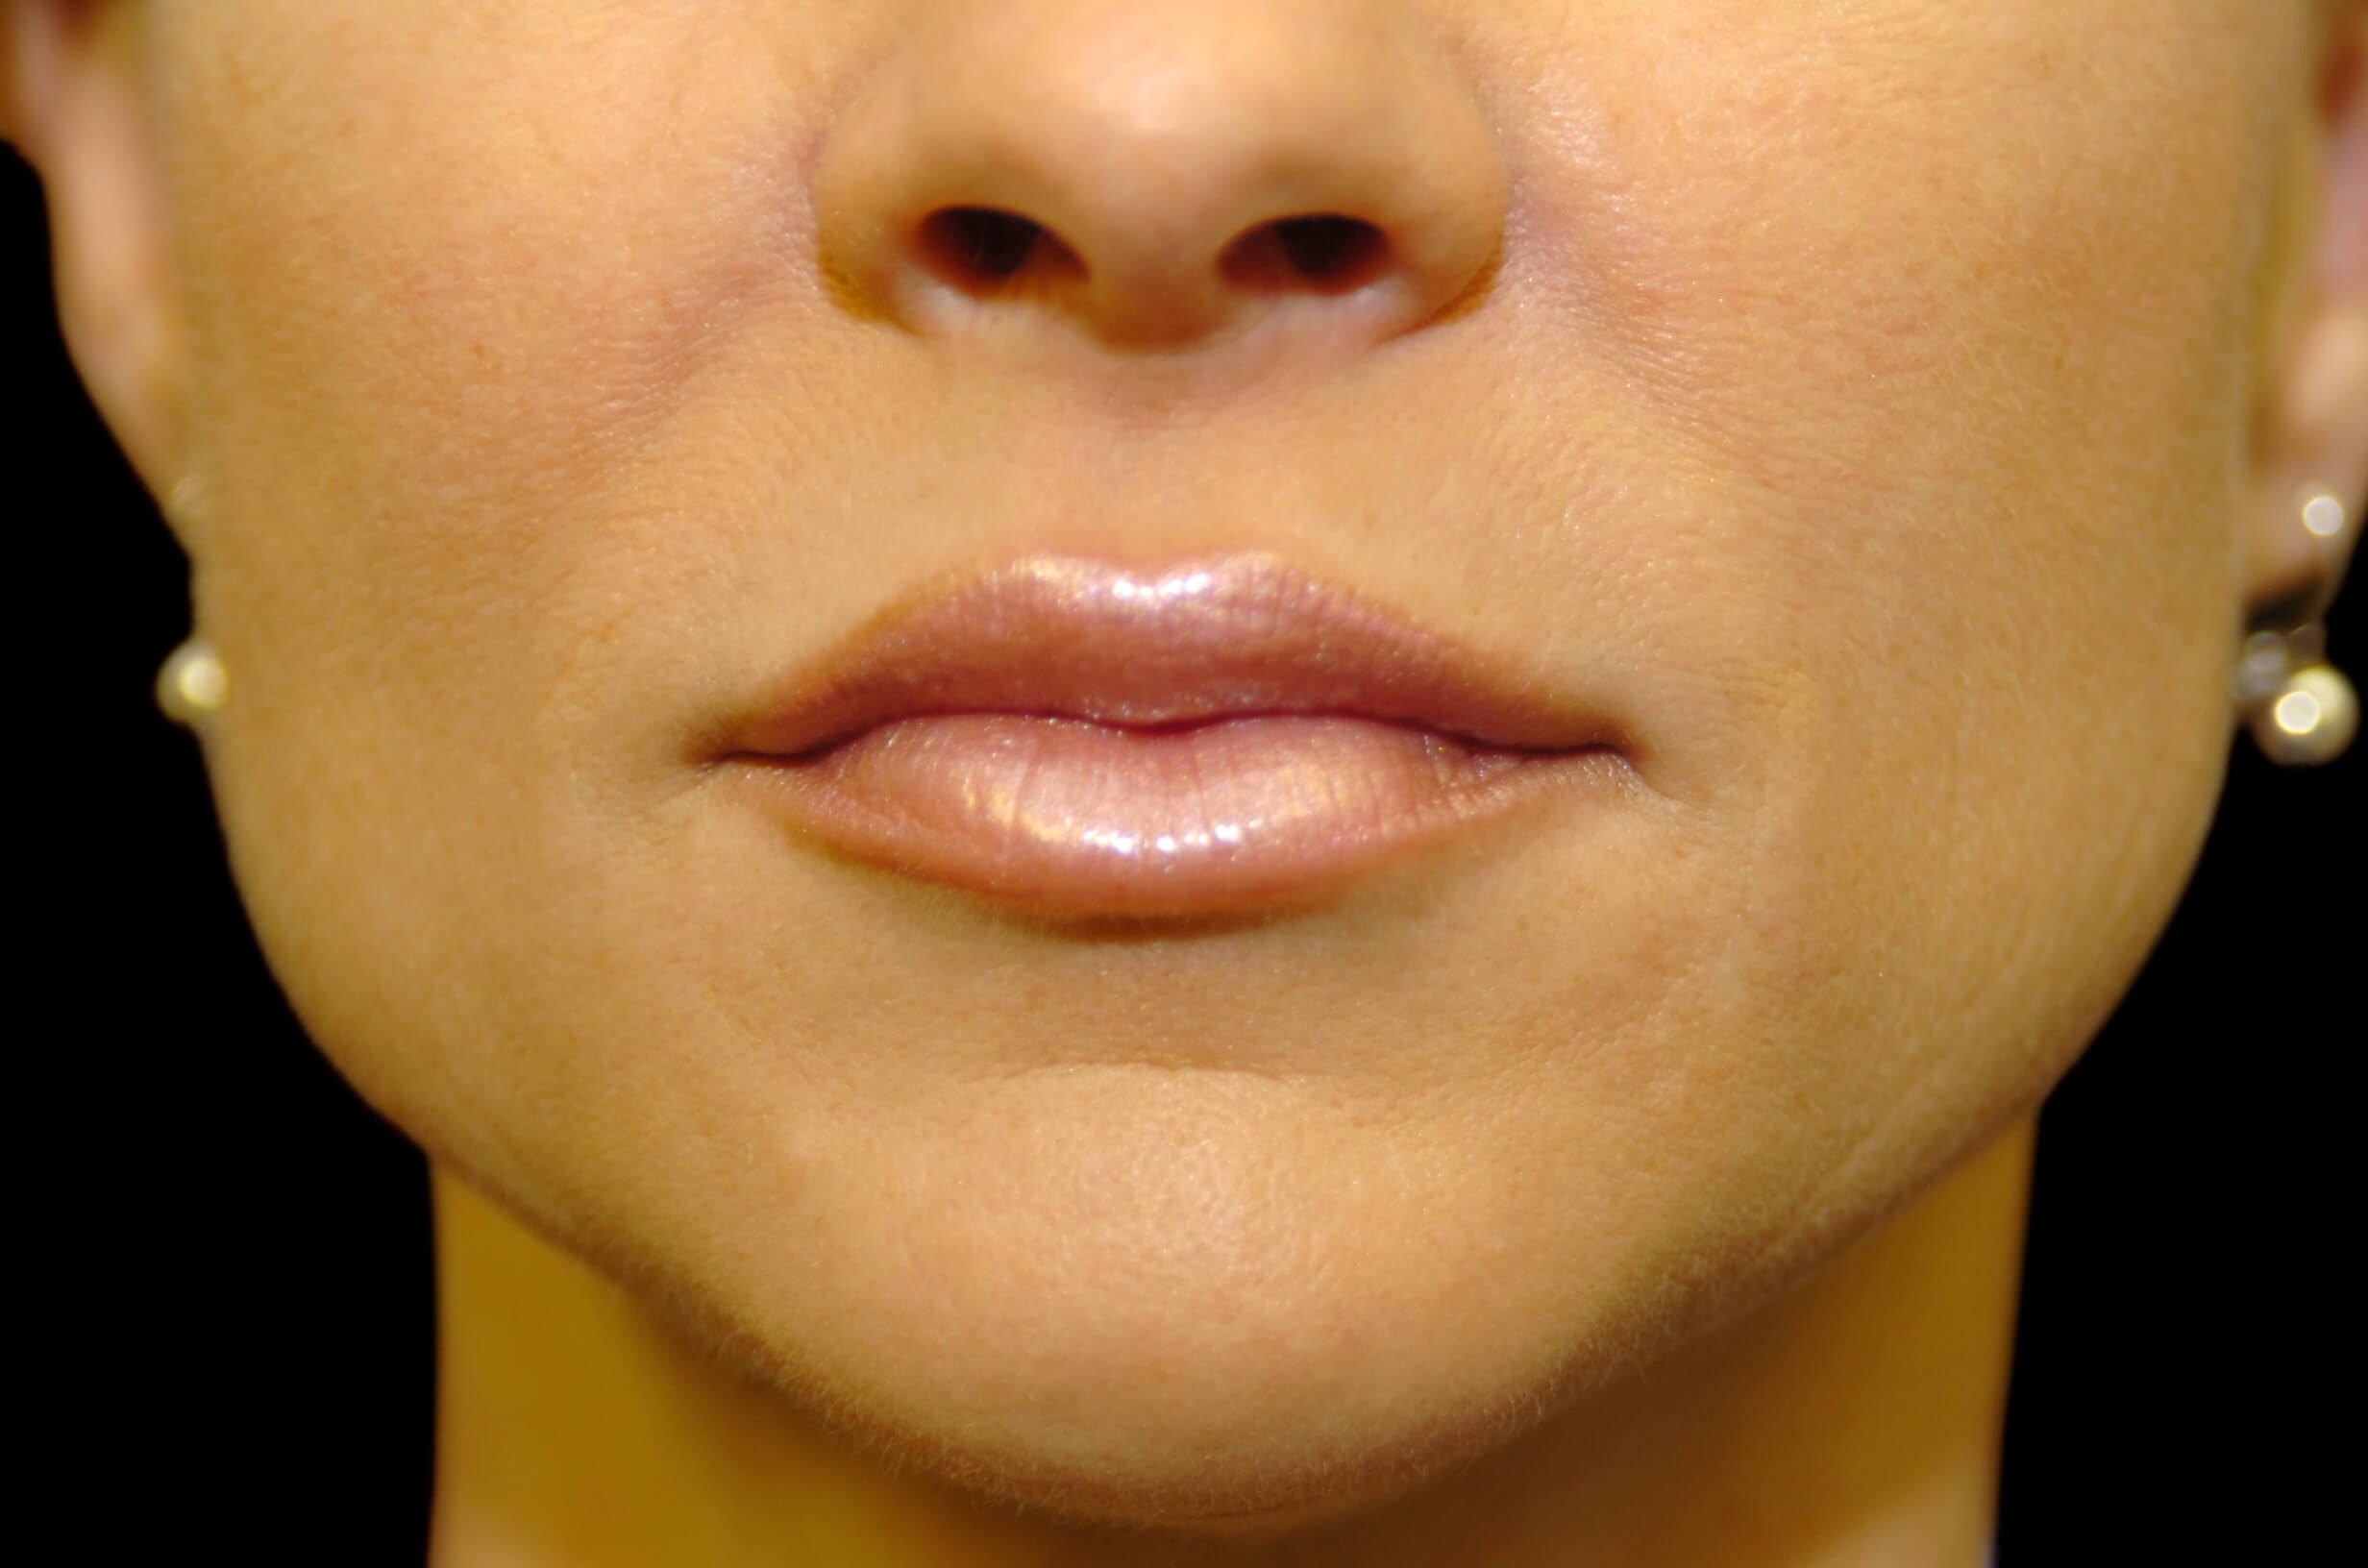 Restylane Lips and Smile Lines After Restylane